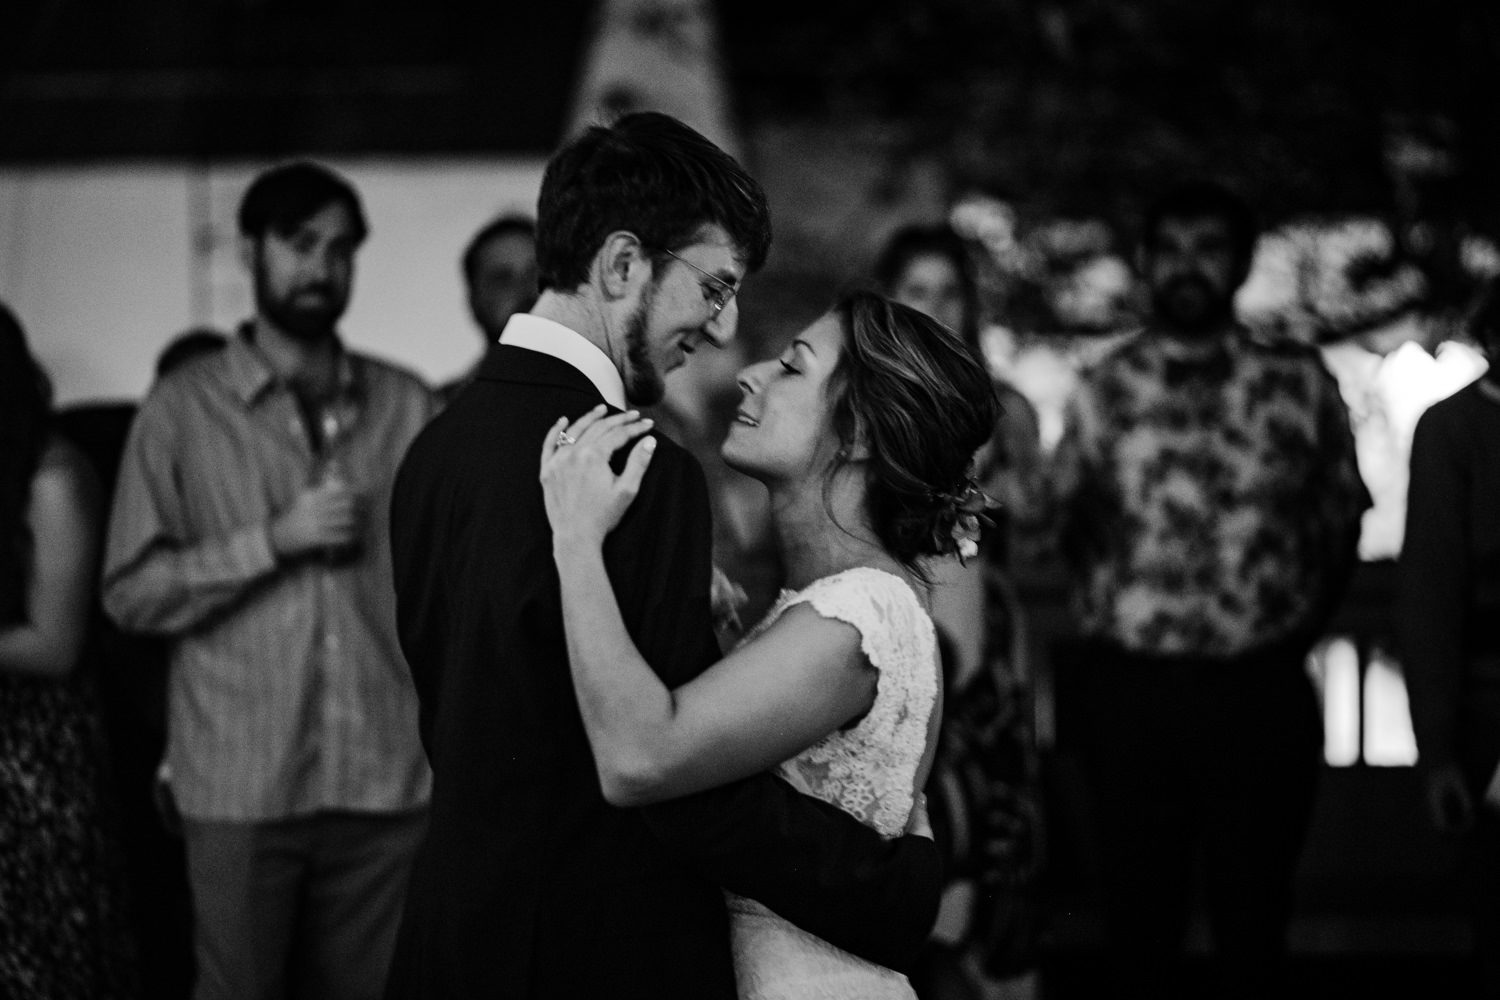 Bride and groom having their first dance at a wedding reception